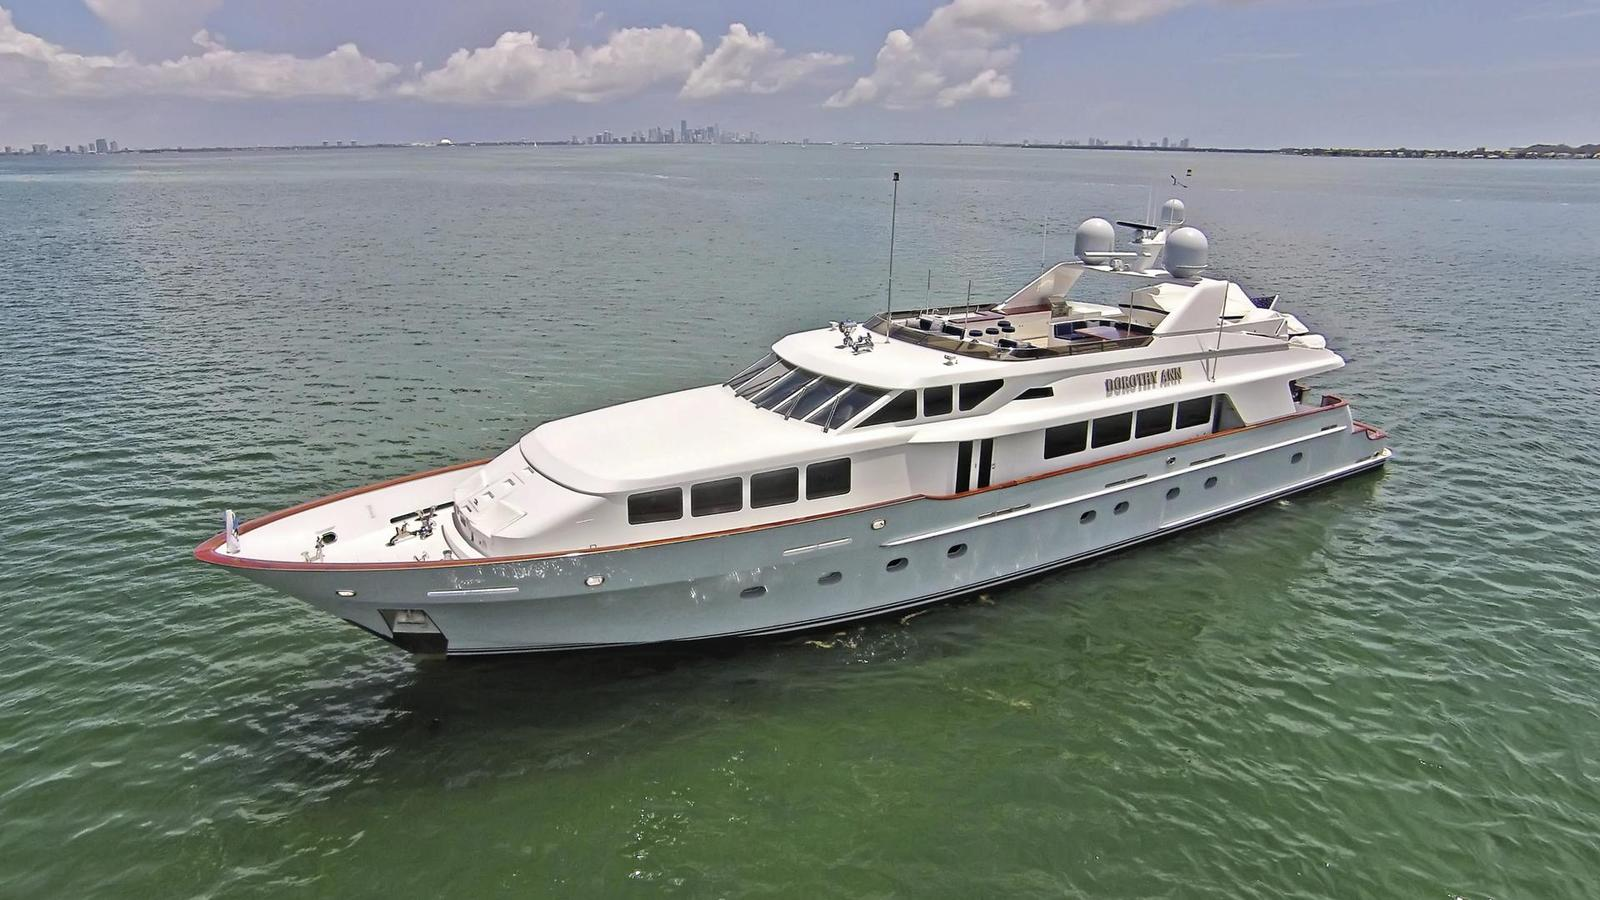 TOP 5 YACHTS AT FORT LAUDERDALE INTERNATIONAL BOAT SHOW 2016